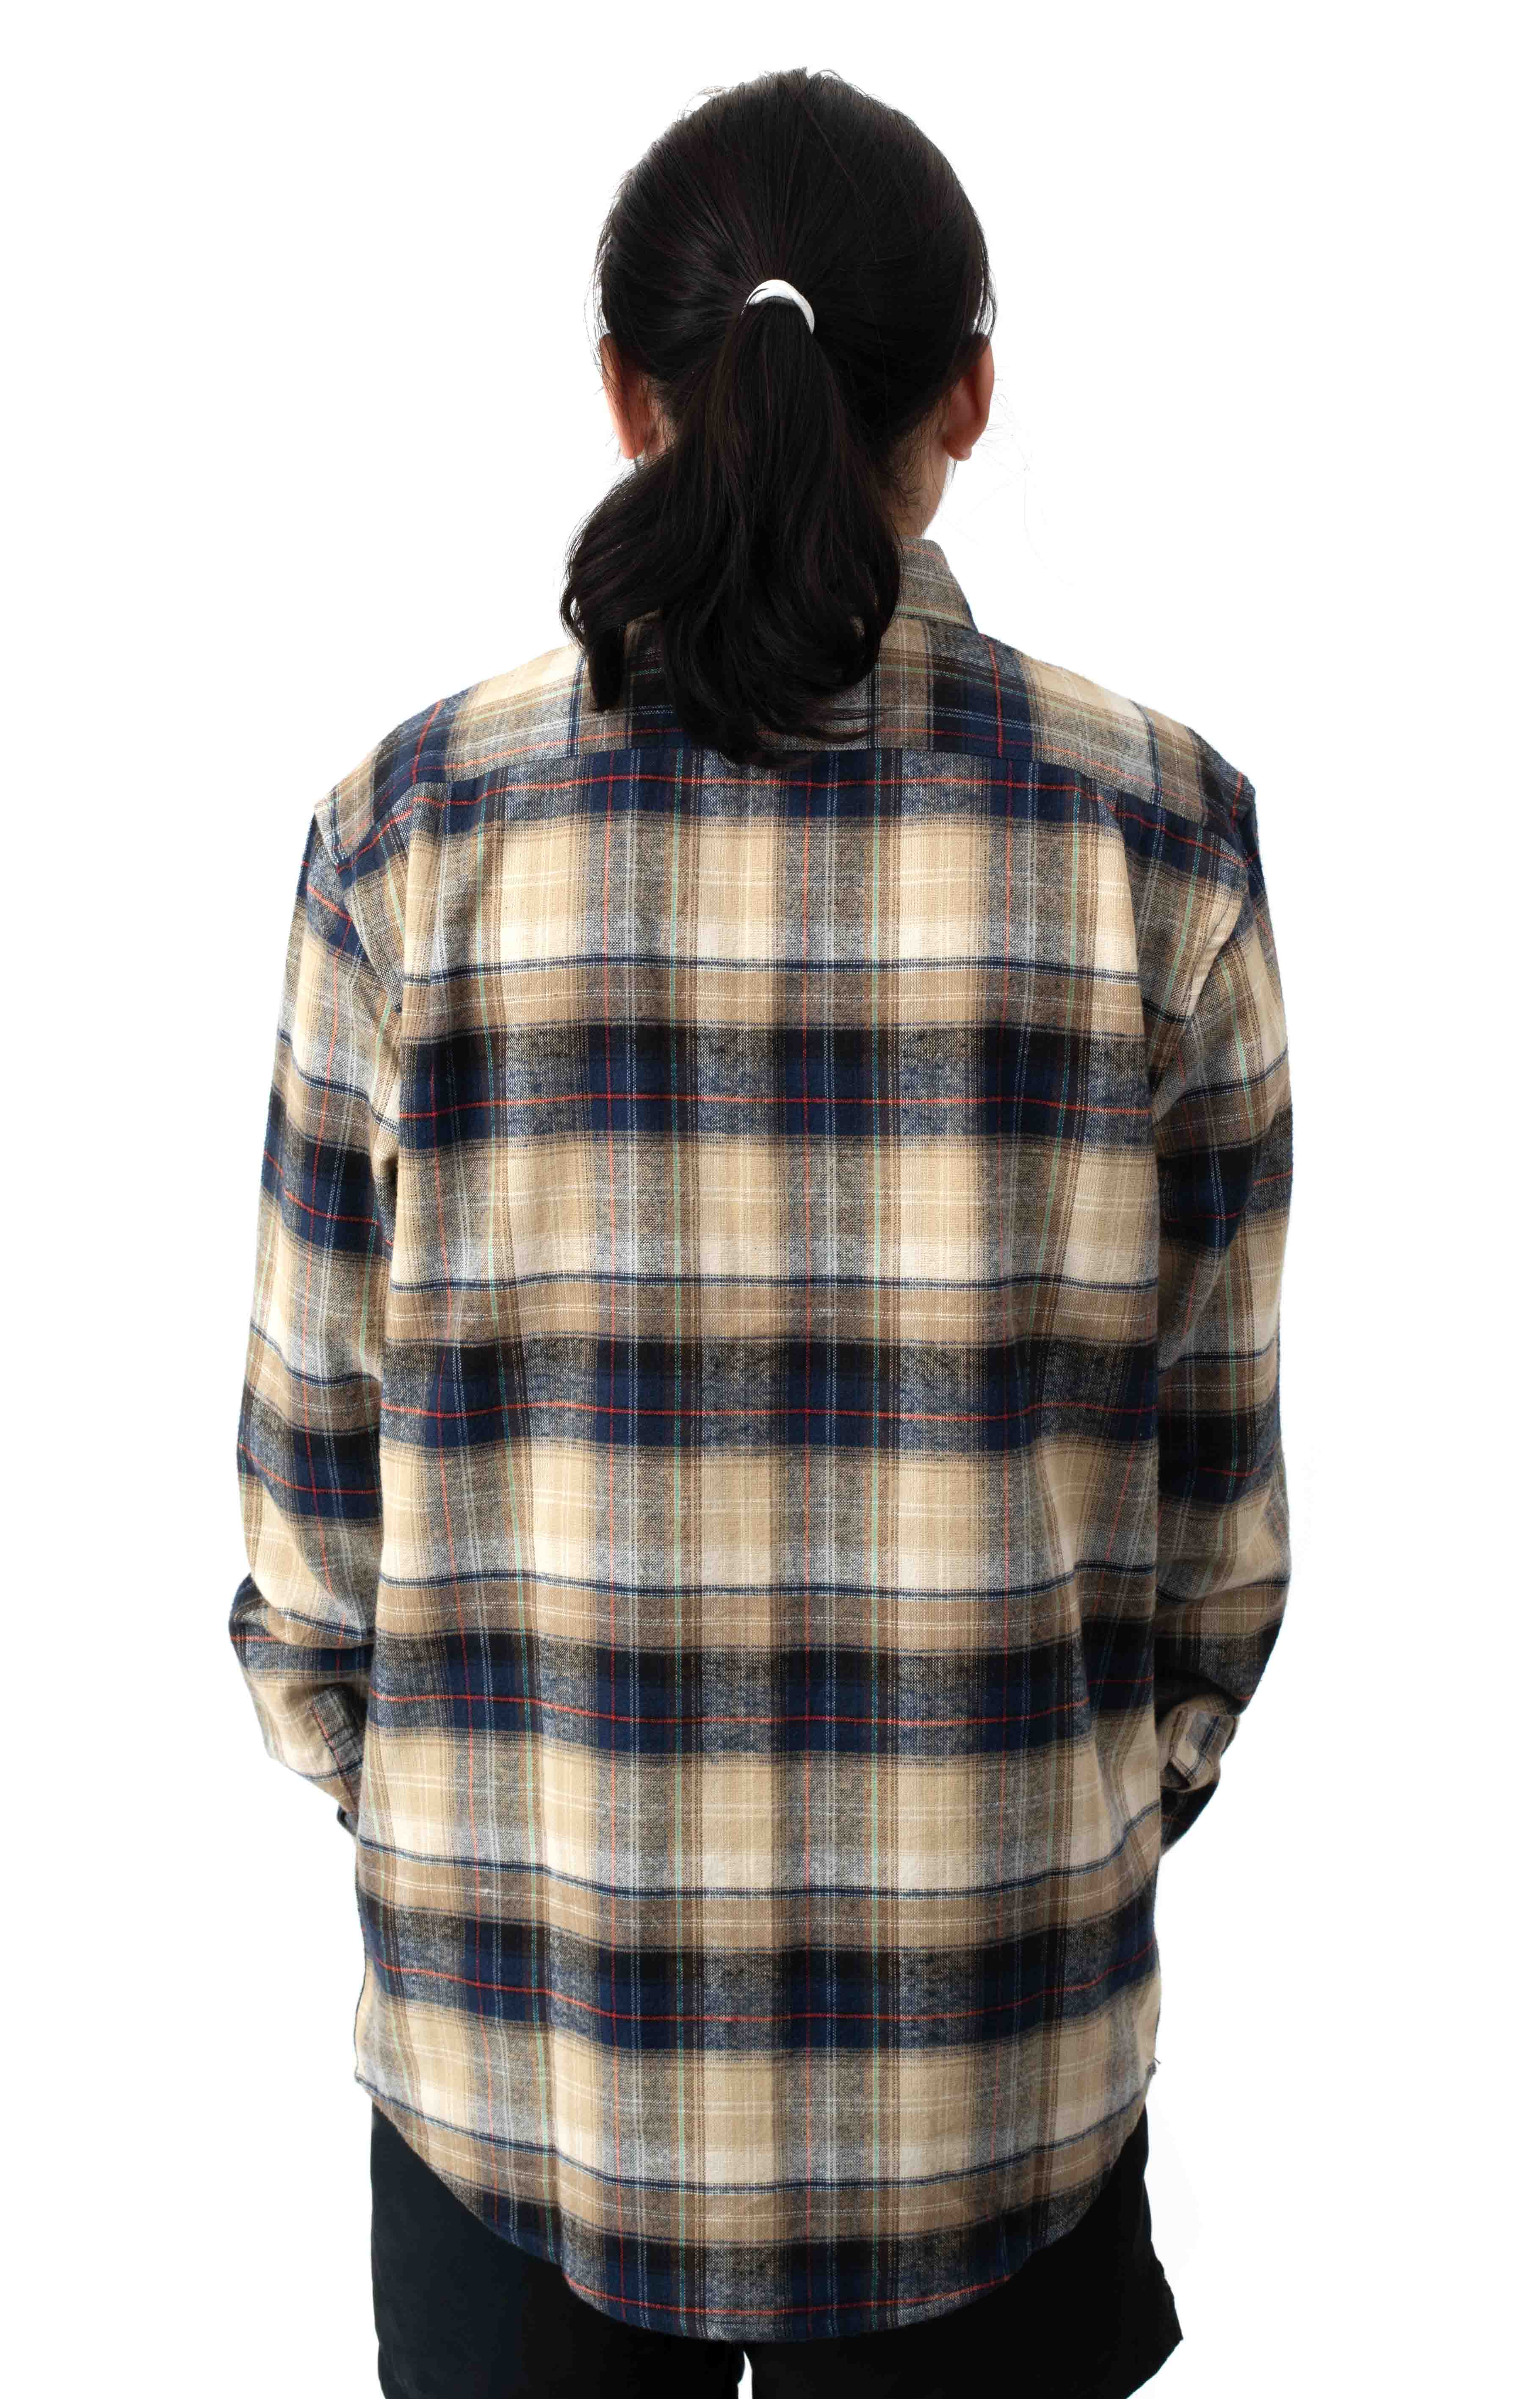 Emerson Flannel Button-Up Shirt - Navy  3